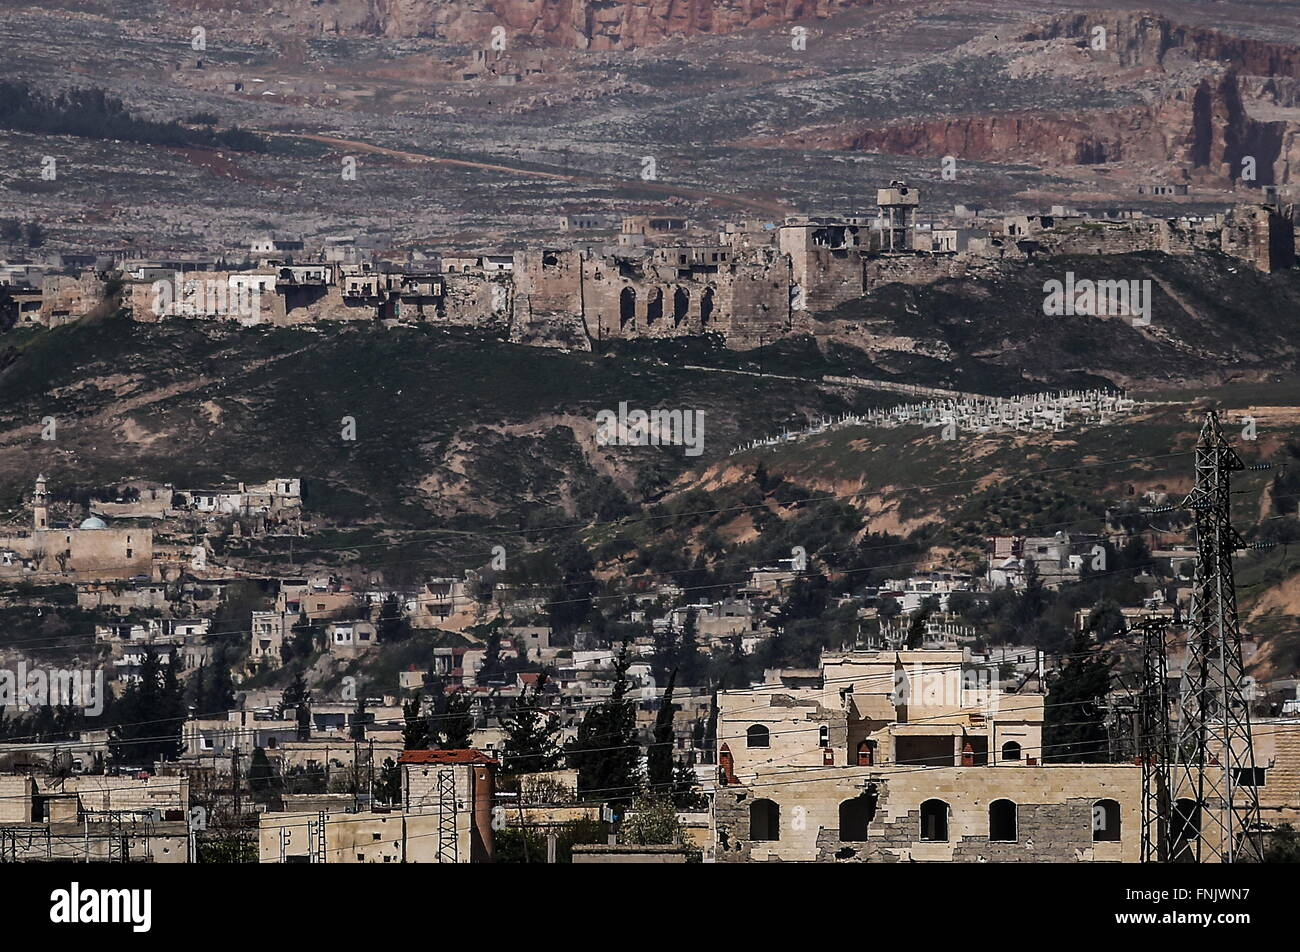 HAMA PROVINCE, SYRIA. MARCH 16, 2016. A panoramic view of the town of Apamea (Afamiya) with a distant view of Qalaat - Stock Image